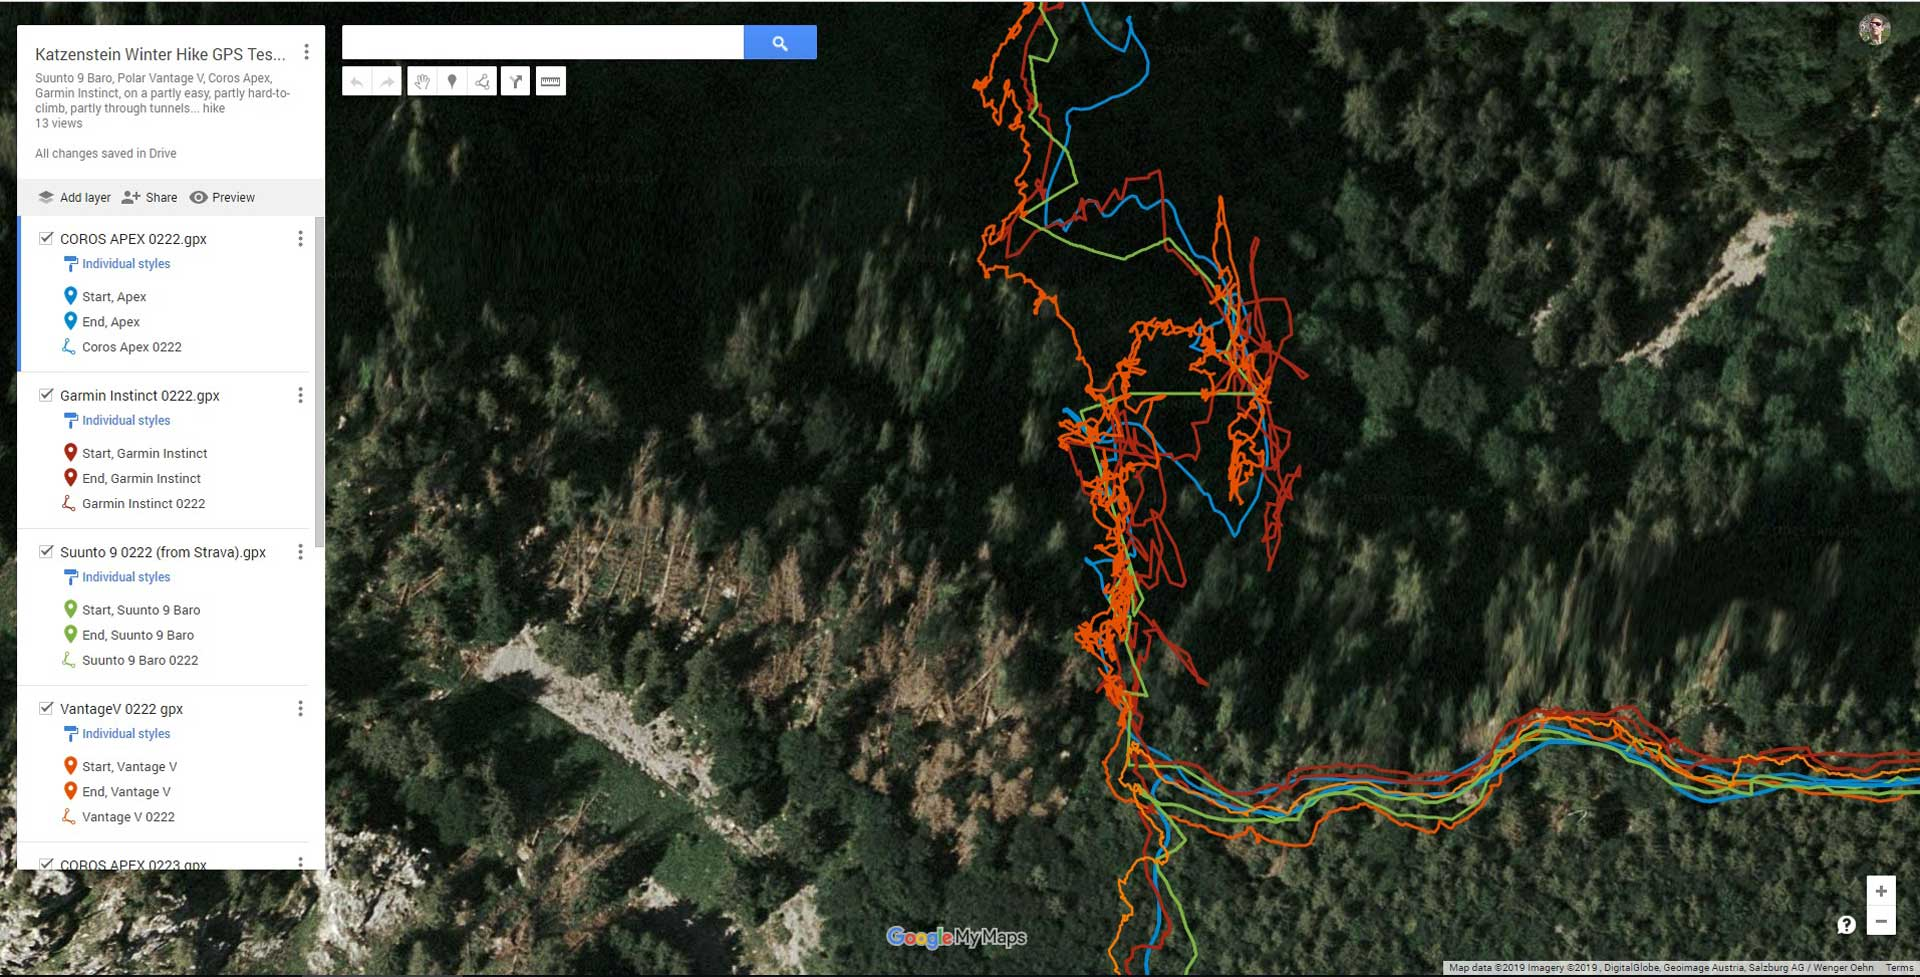 Sports Watch Performance: Winter Hiking in the Mountains - Time and